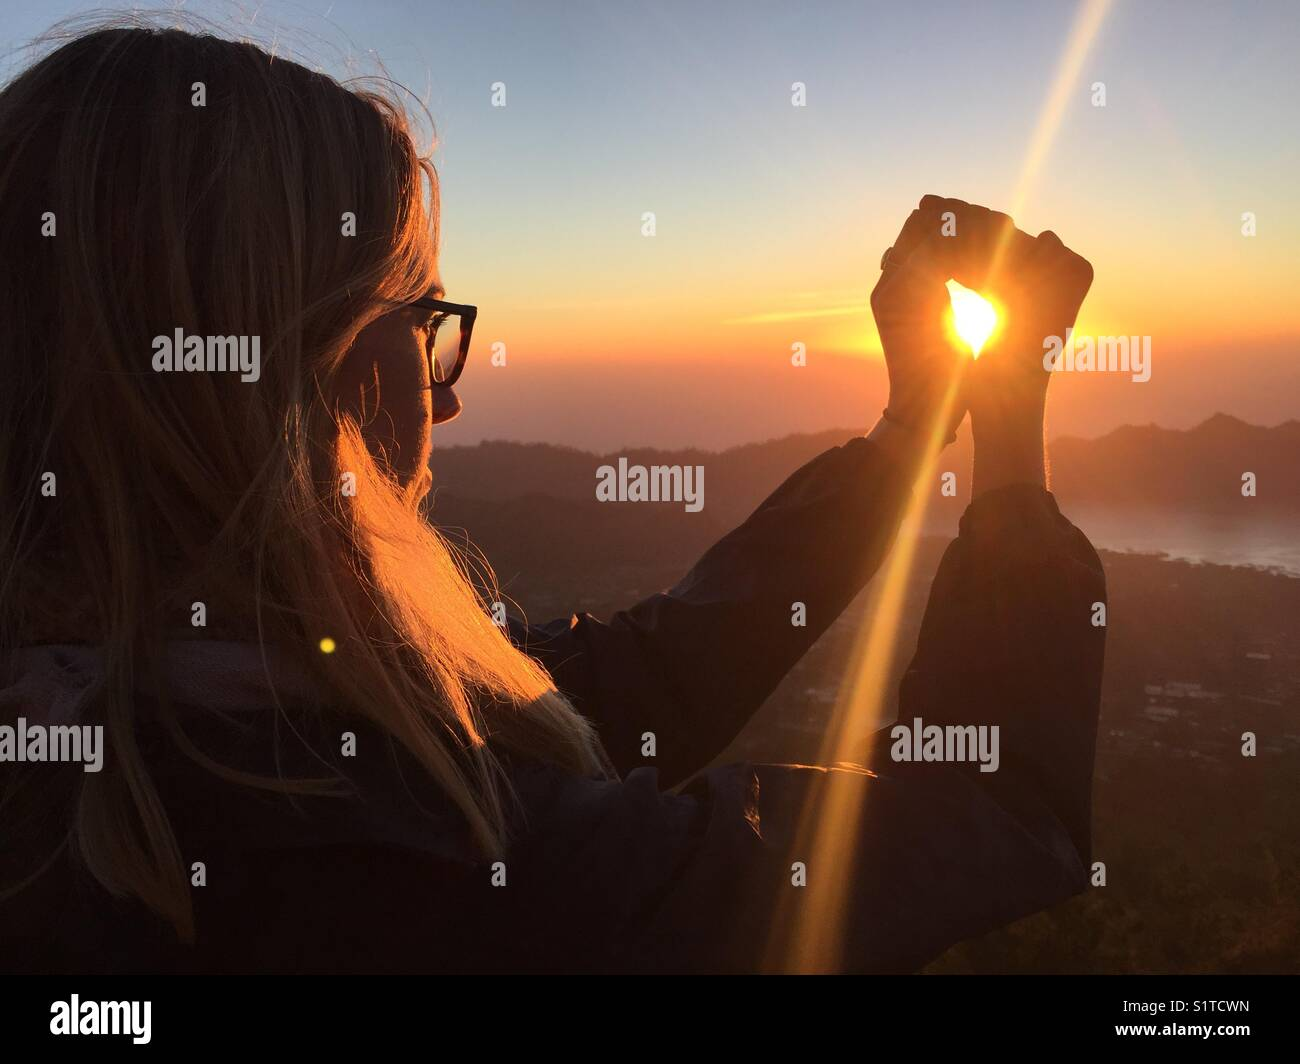 Grasping the sun at Mount Agung, Bali - Stock Image